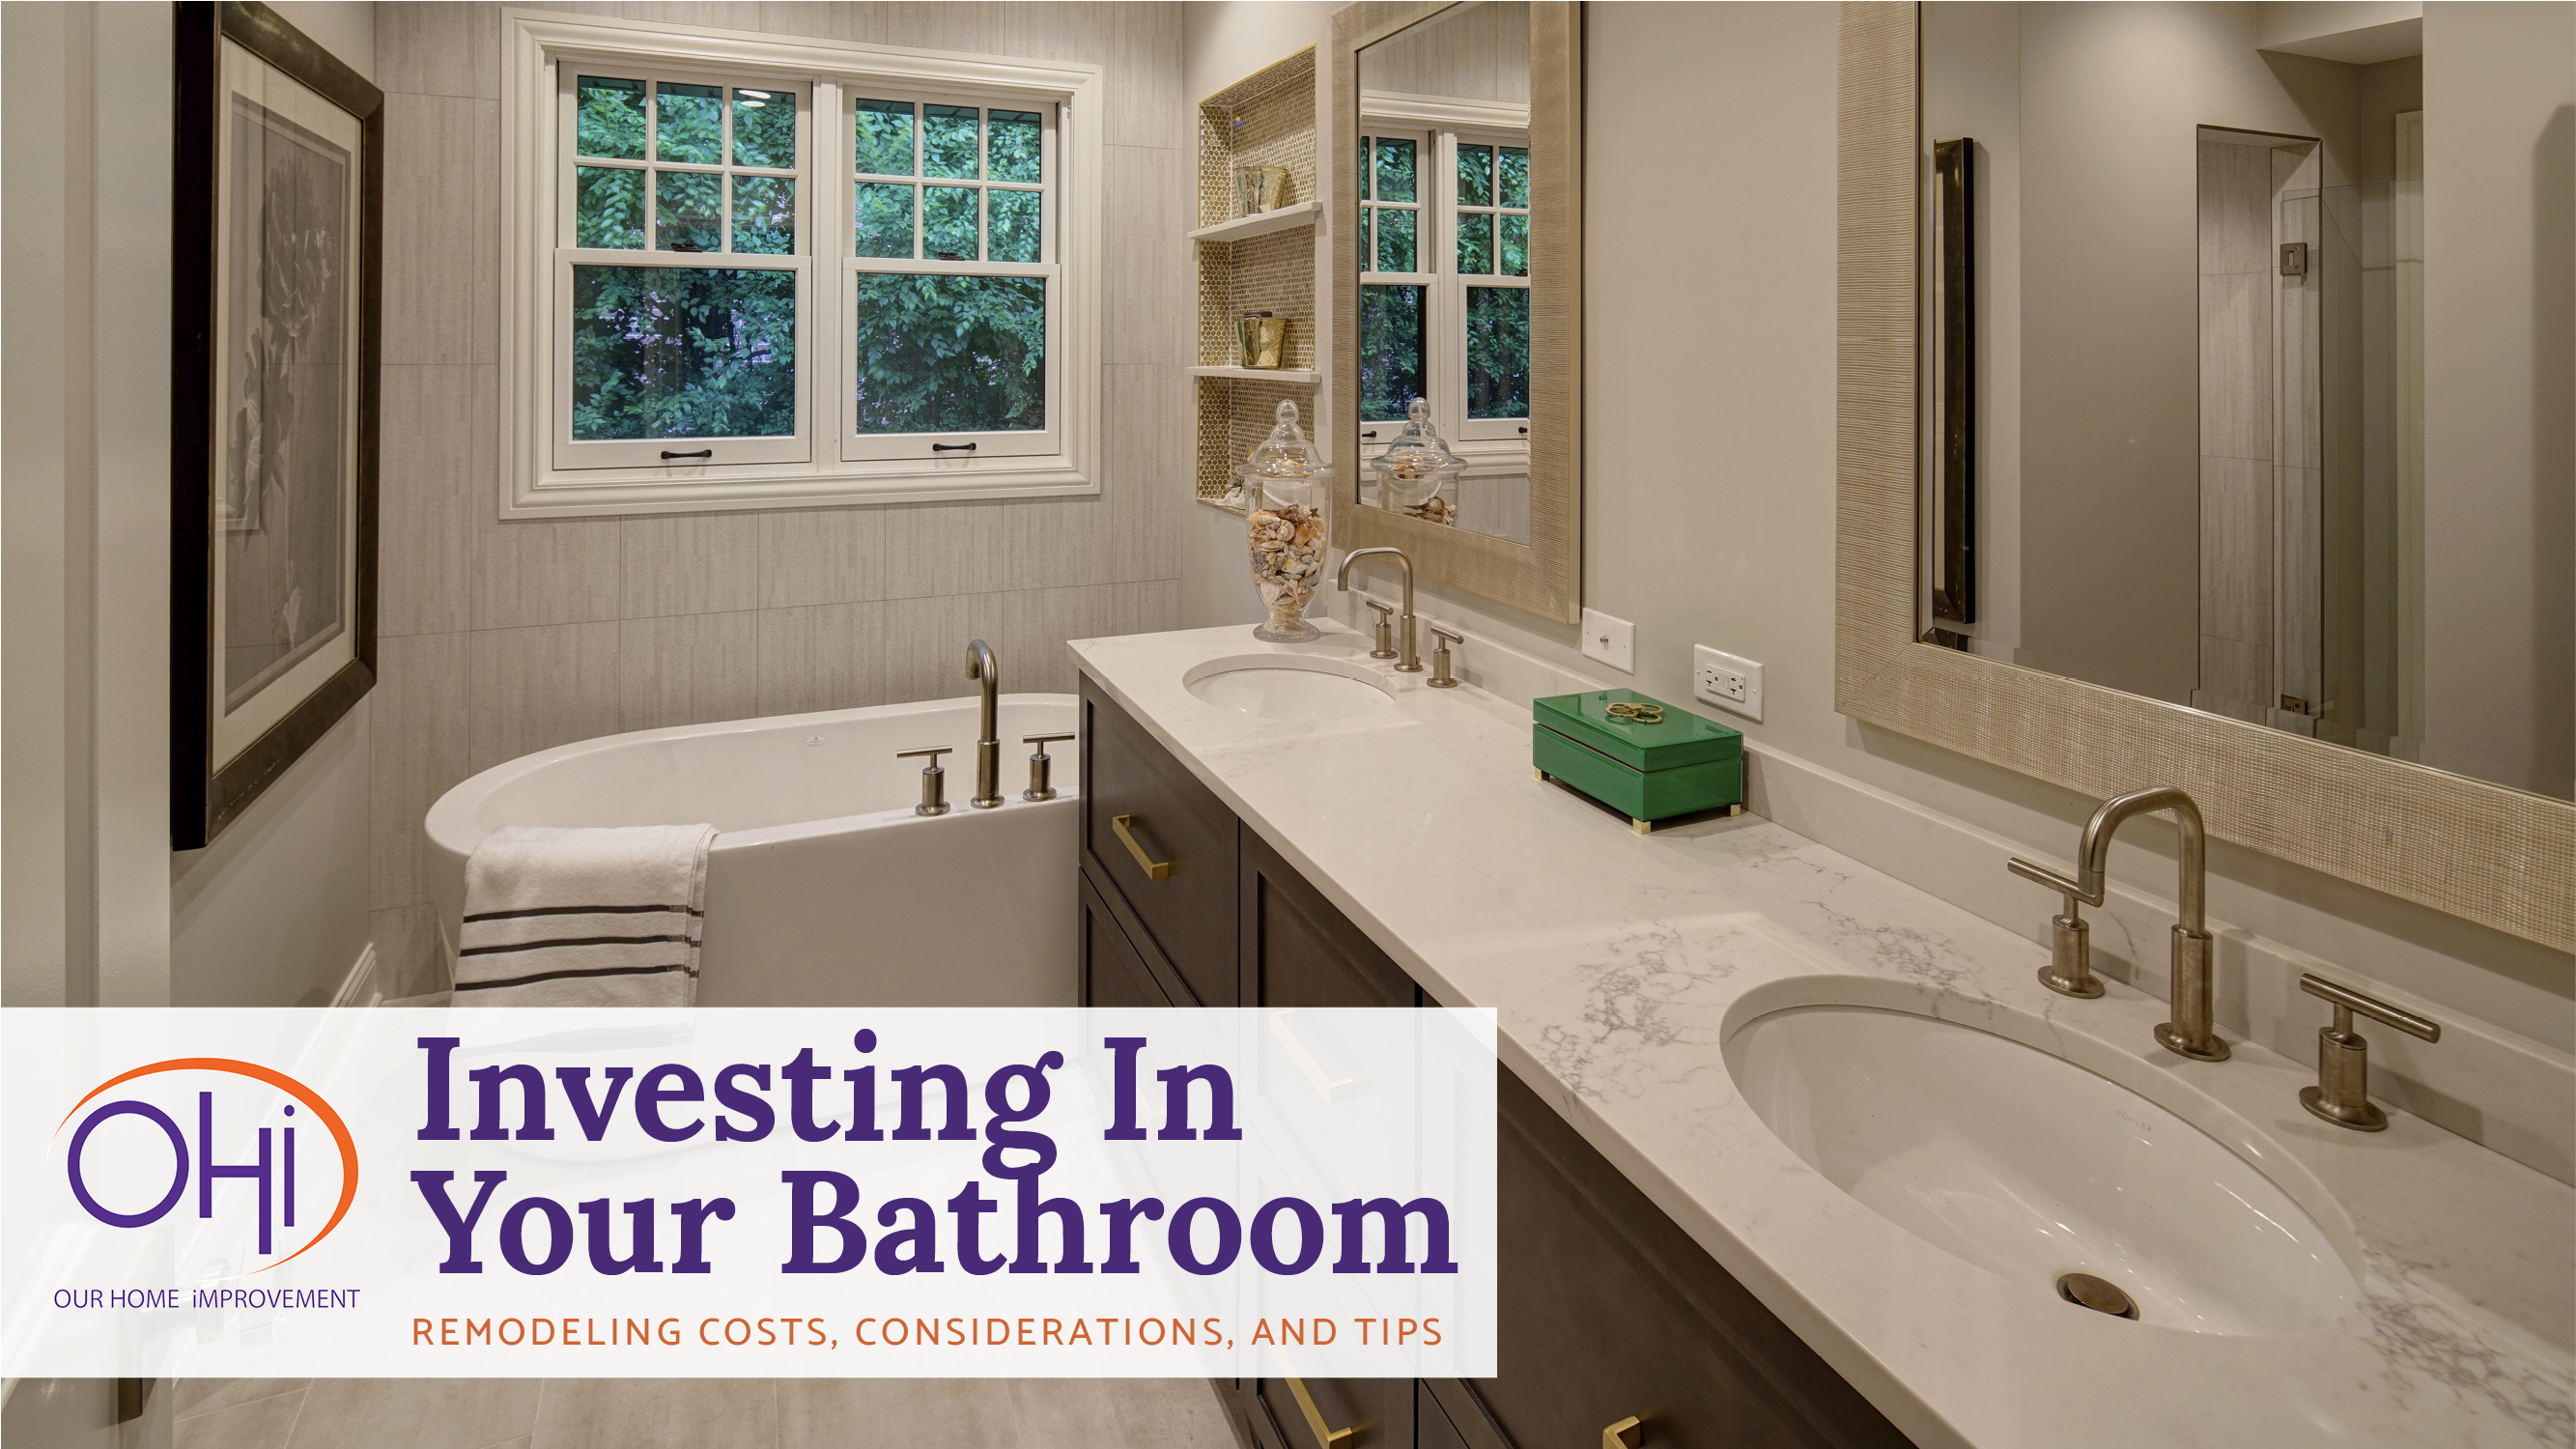 OHi_thought-leadership_cost-of-bathroom-cover